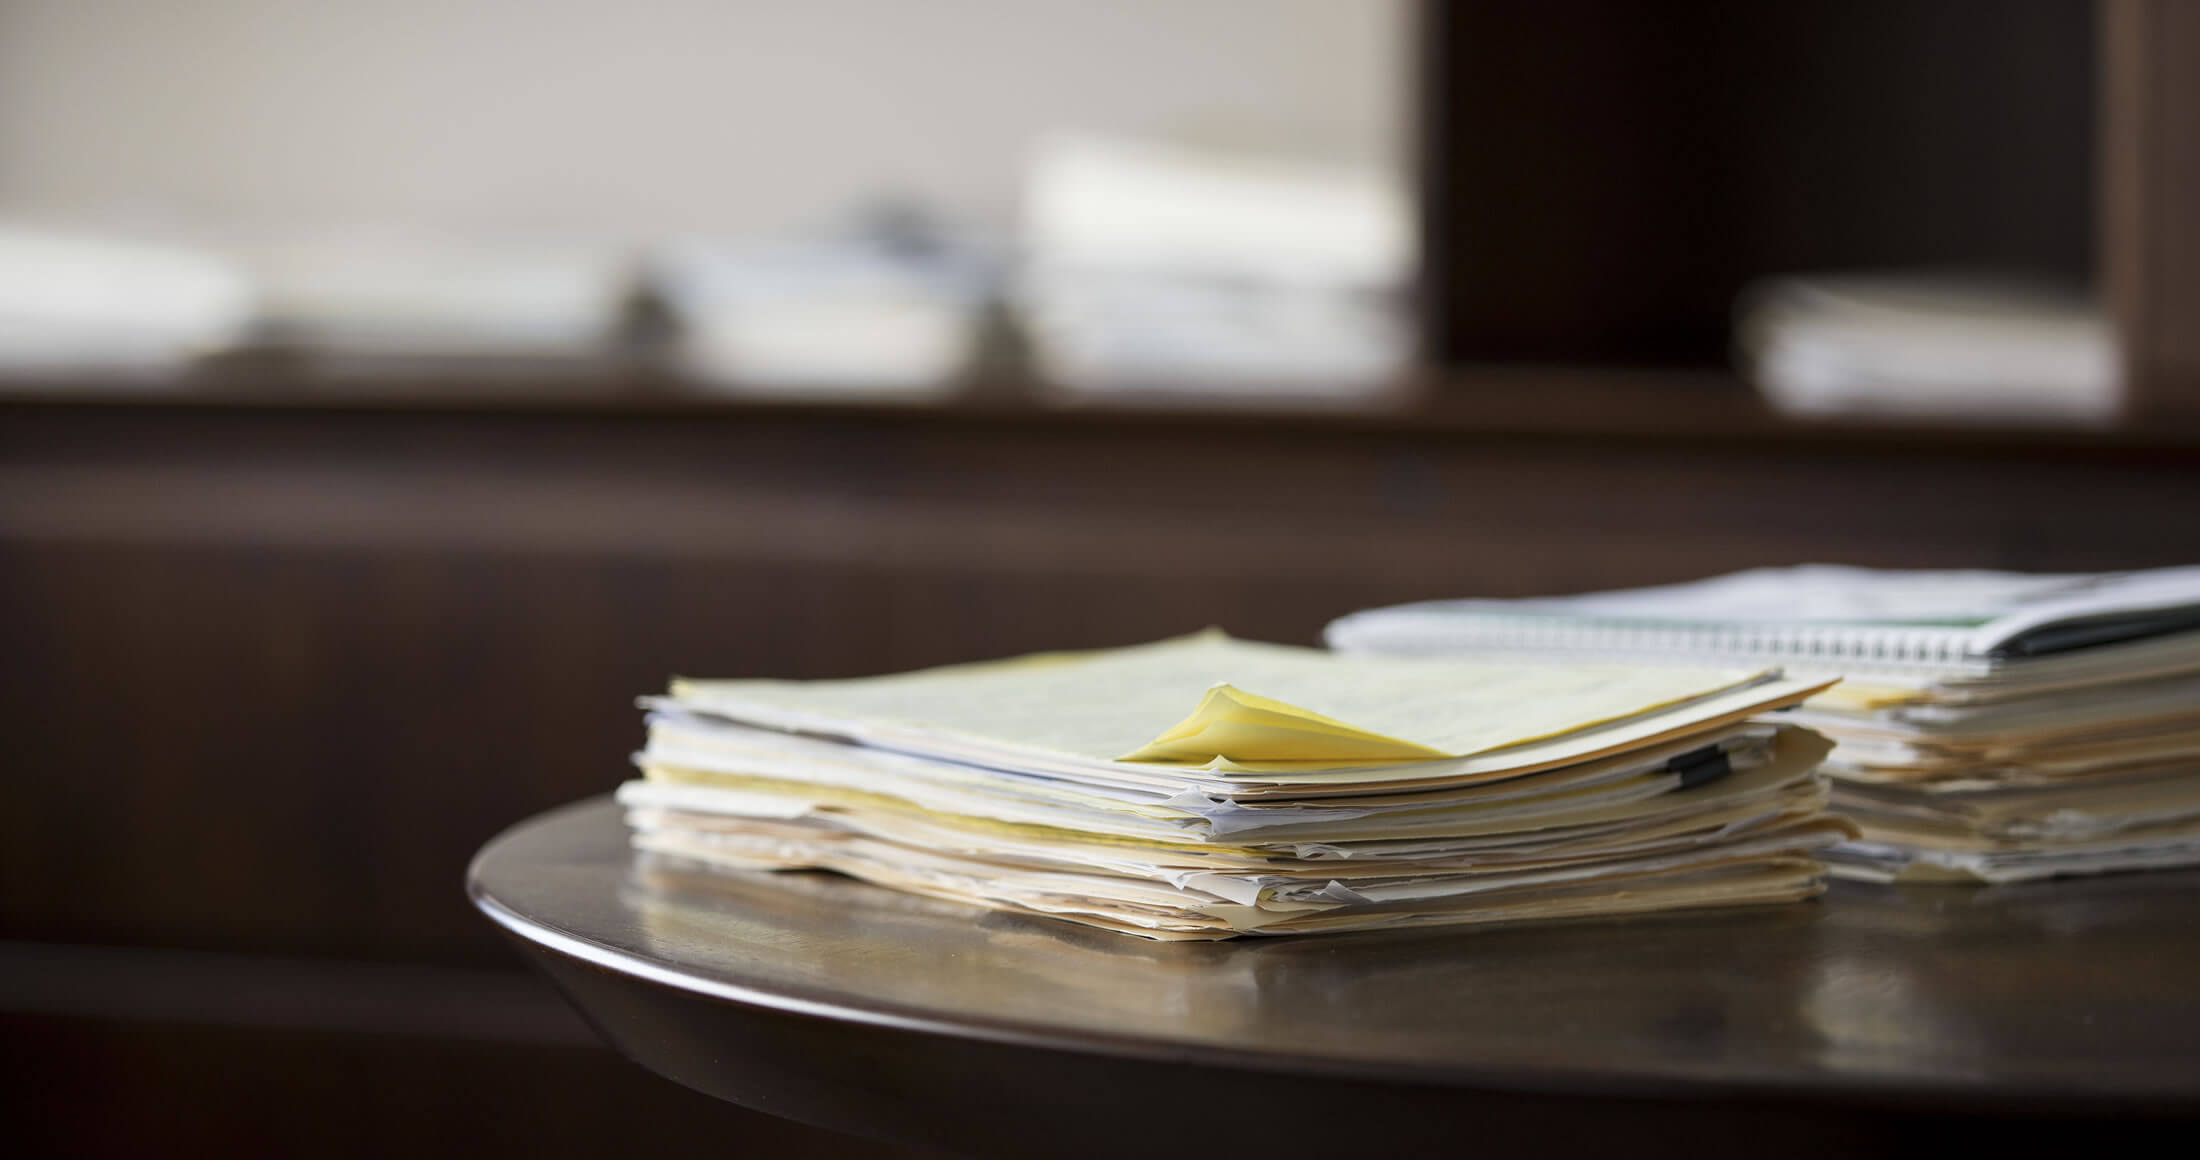 Stack of documents sitting on a table